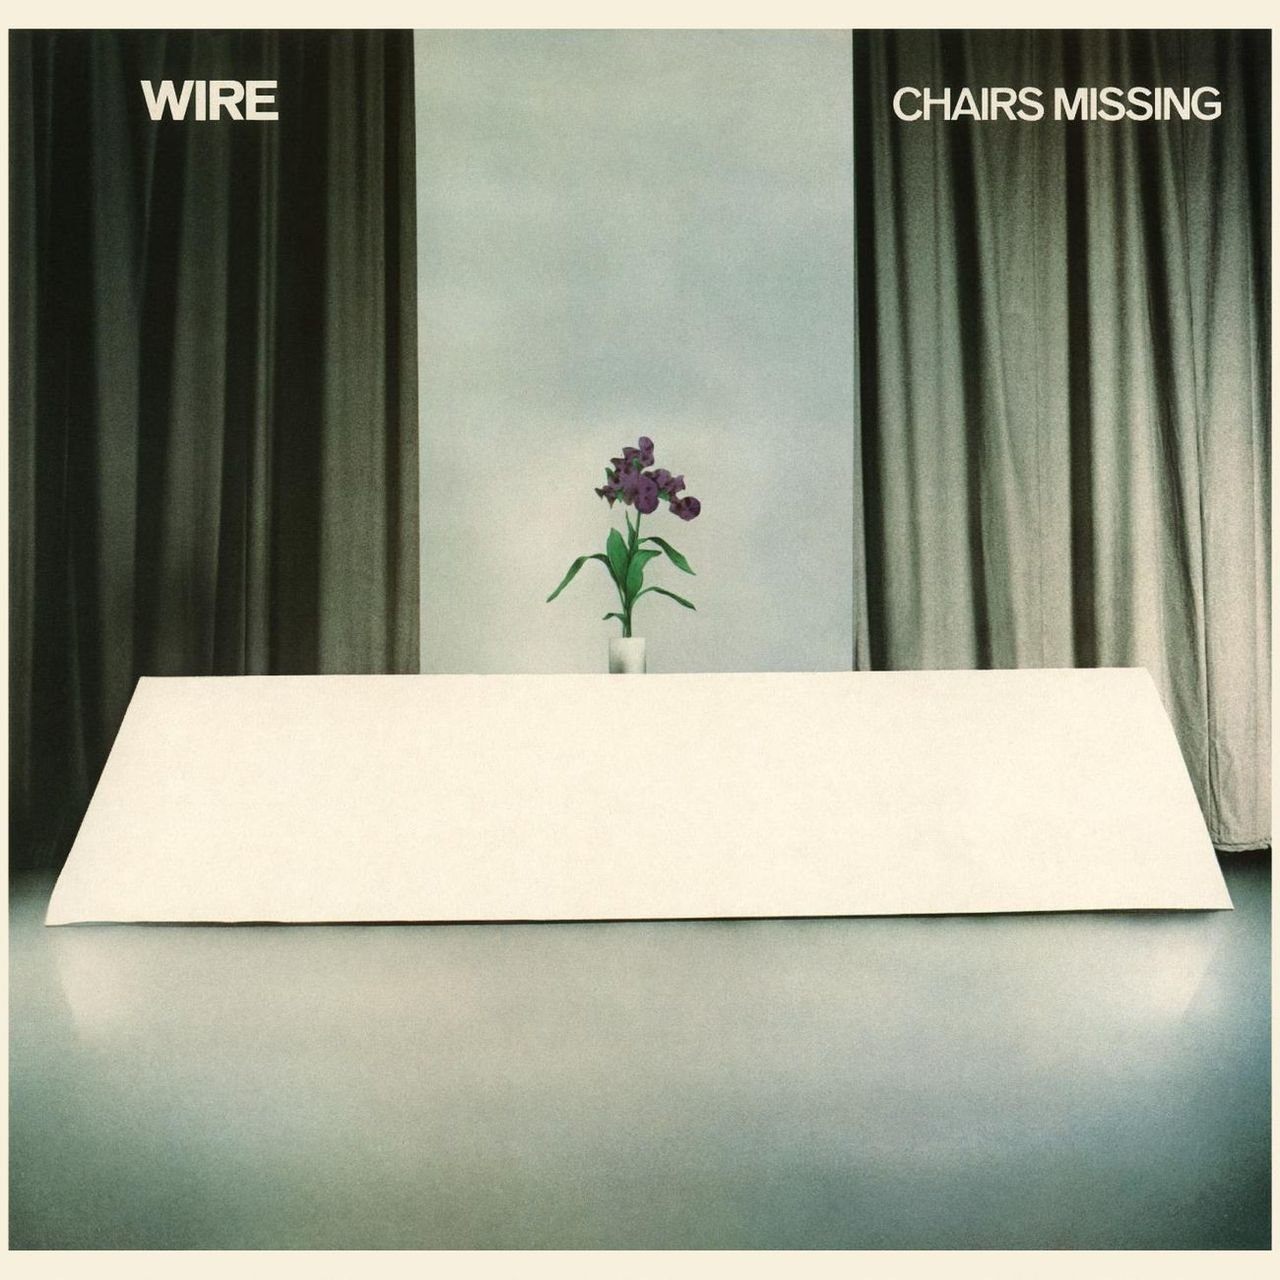 Chair wire chairs missing cover - Chair Wire Chairs Missing Cover 0